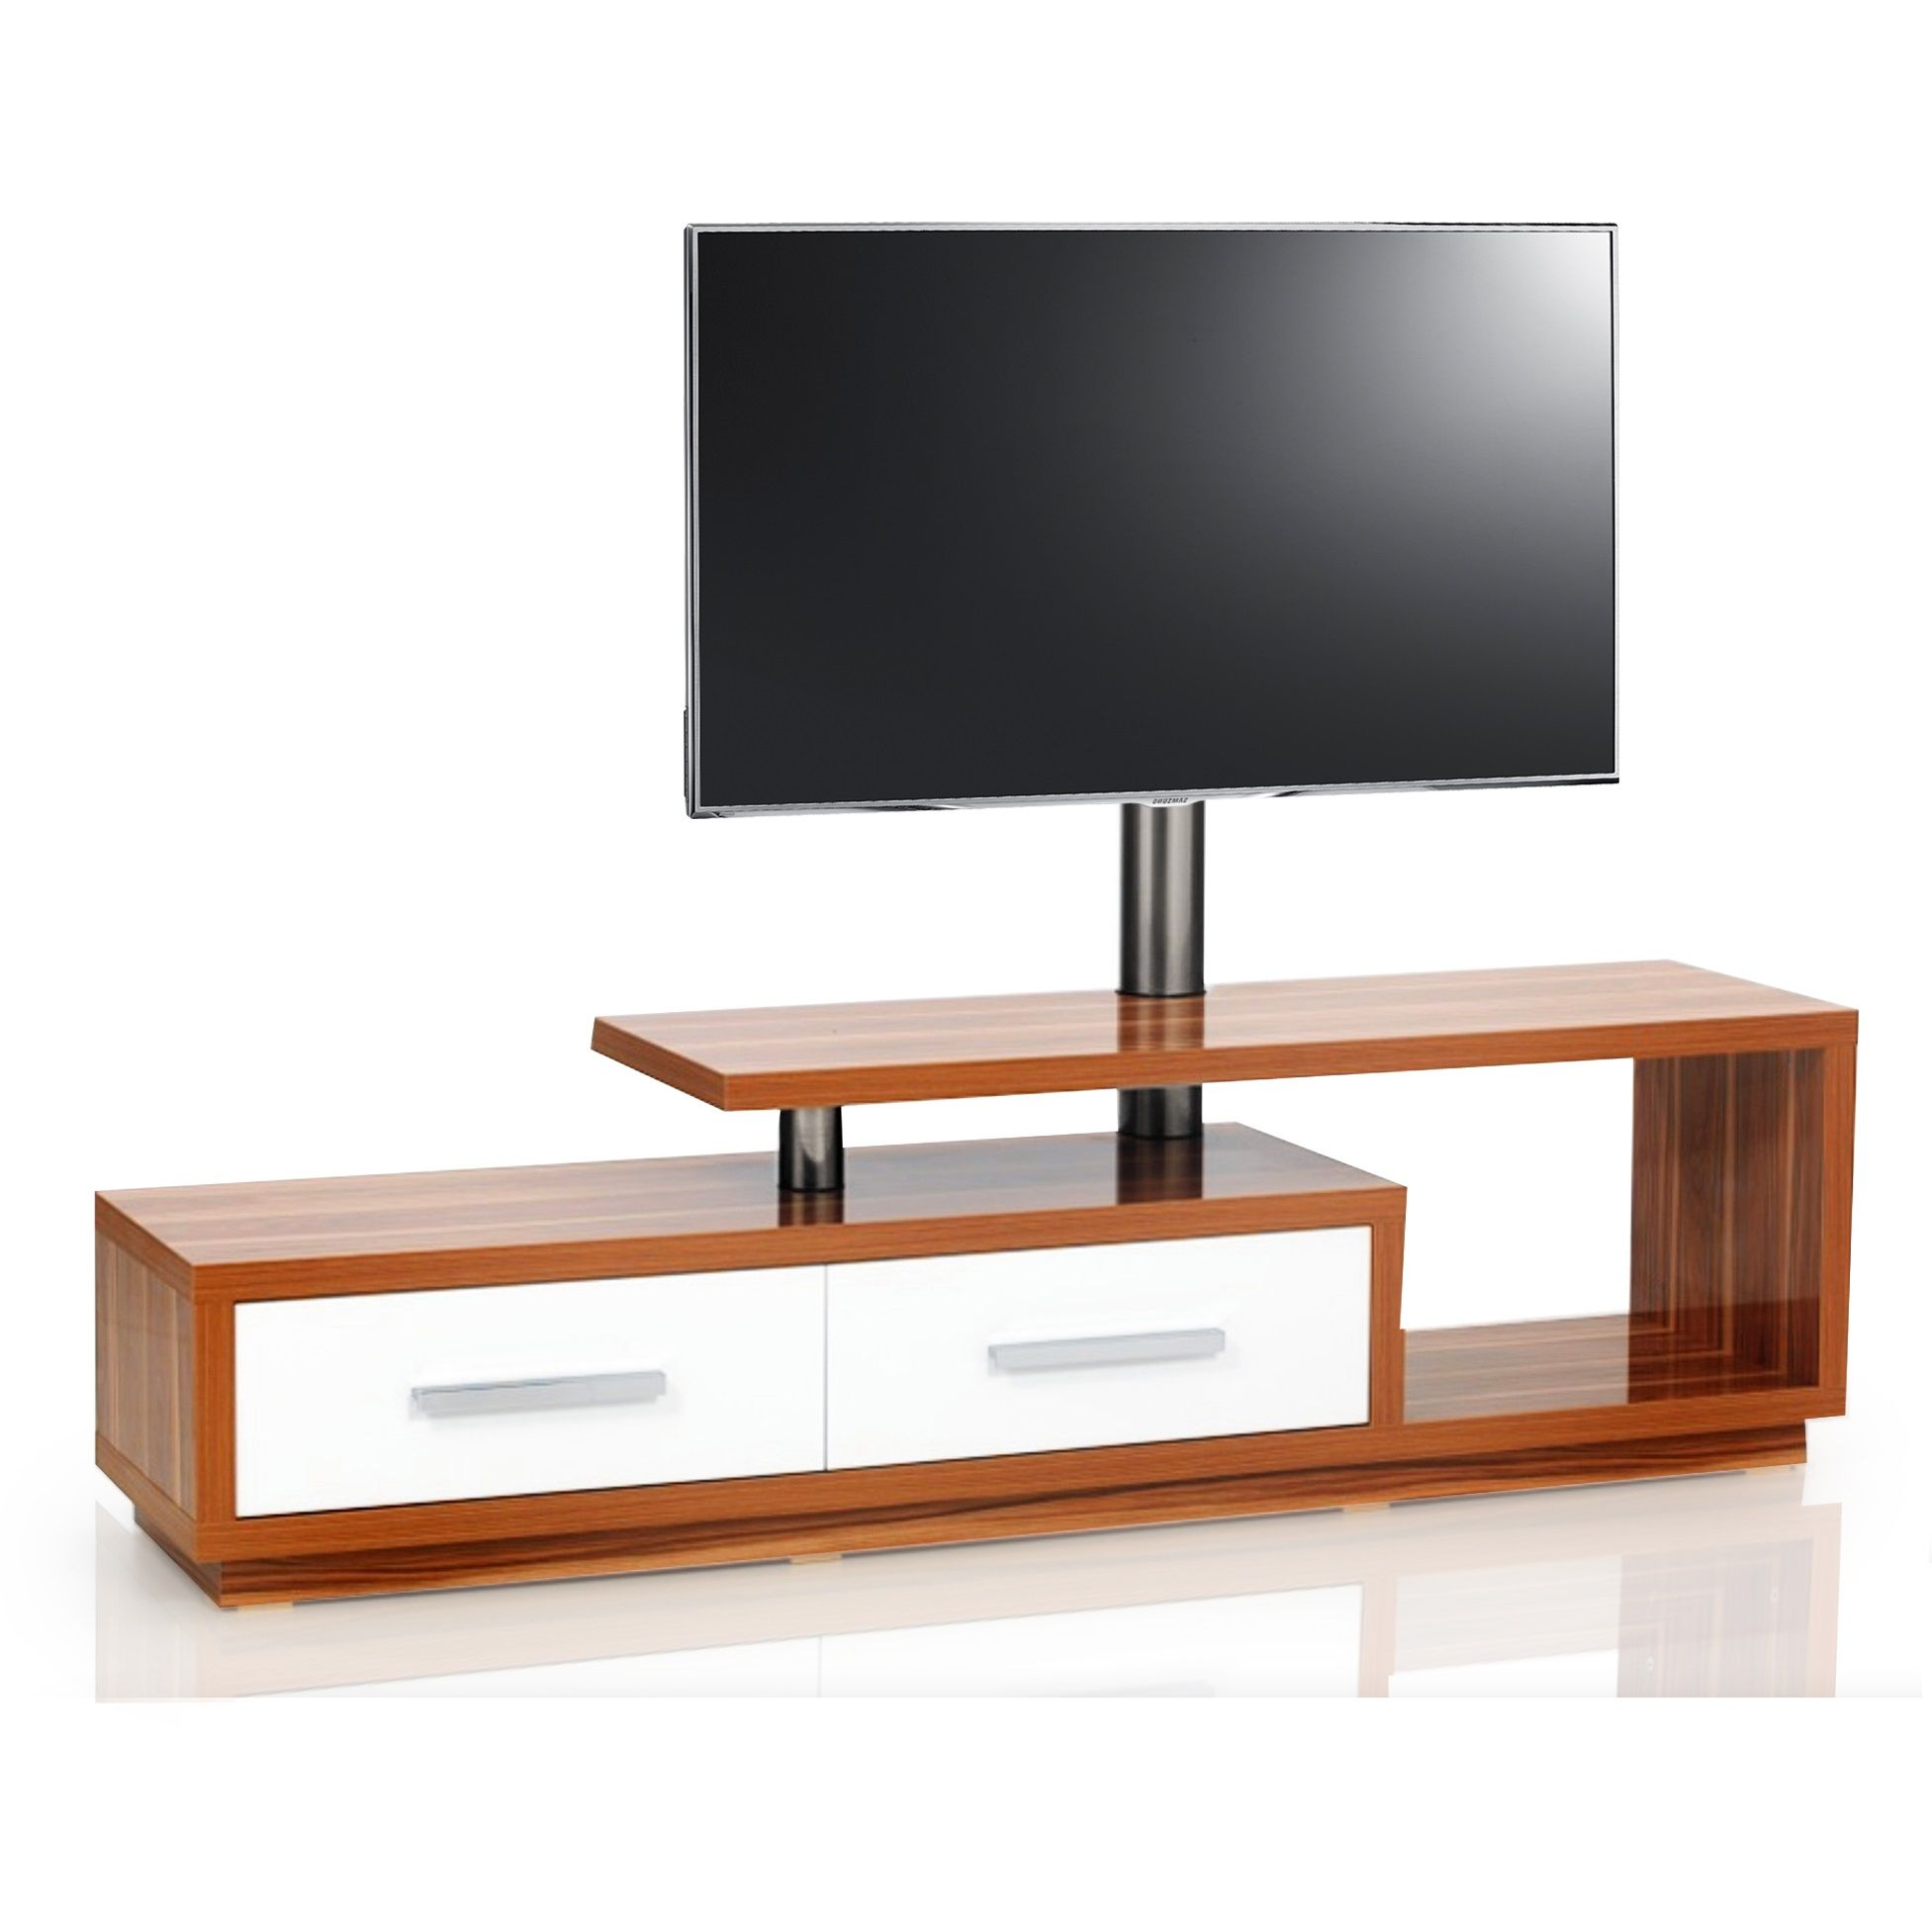 Best Table De Tv Design Images Joshkrajcik Us Joshkrajcik Us # Le Corner Meuble Tv Blanc Led Hi Fi Integre